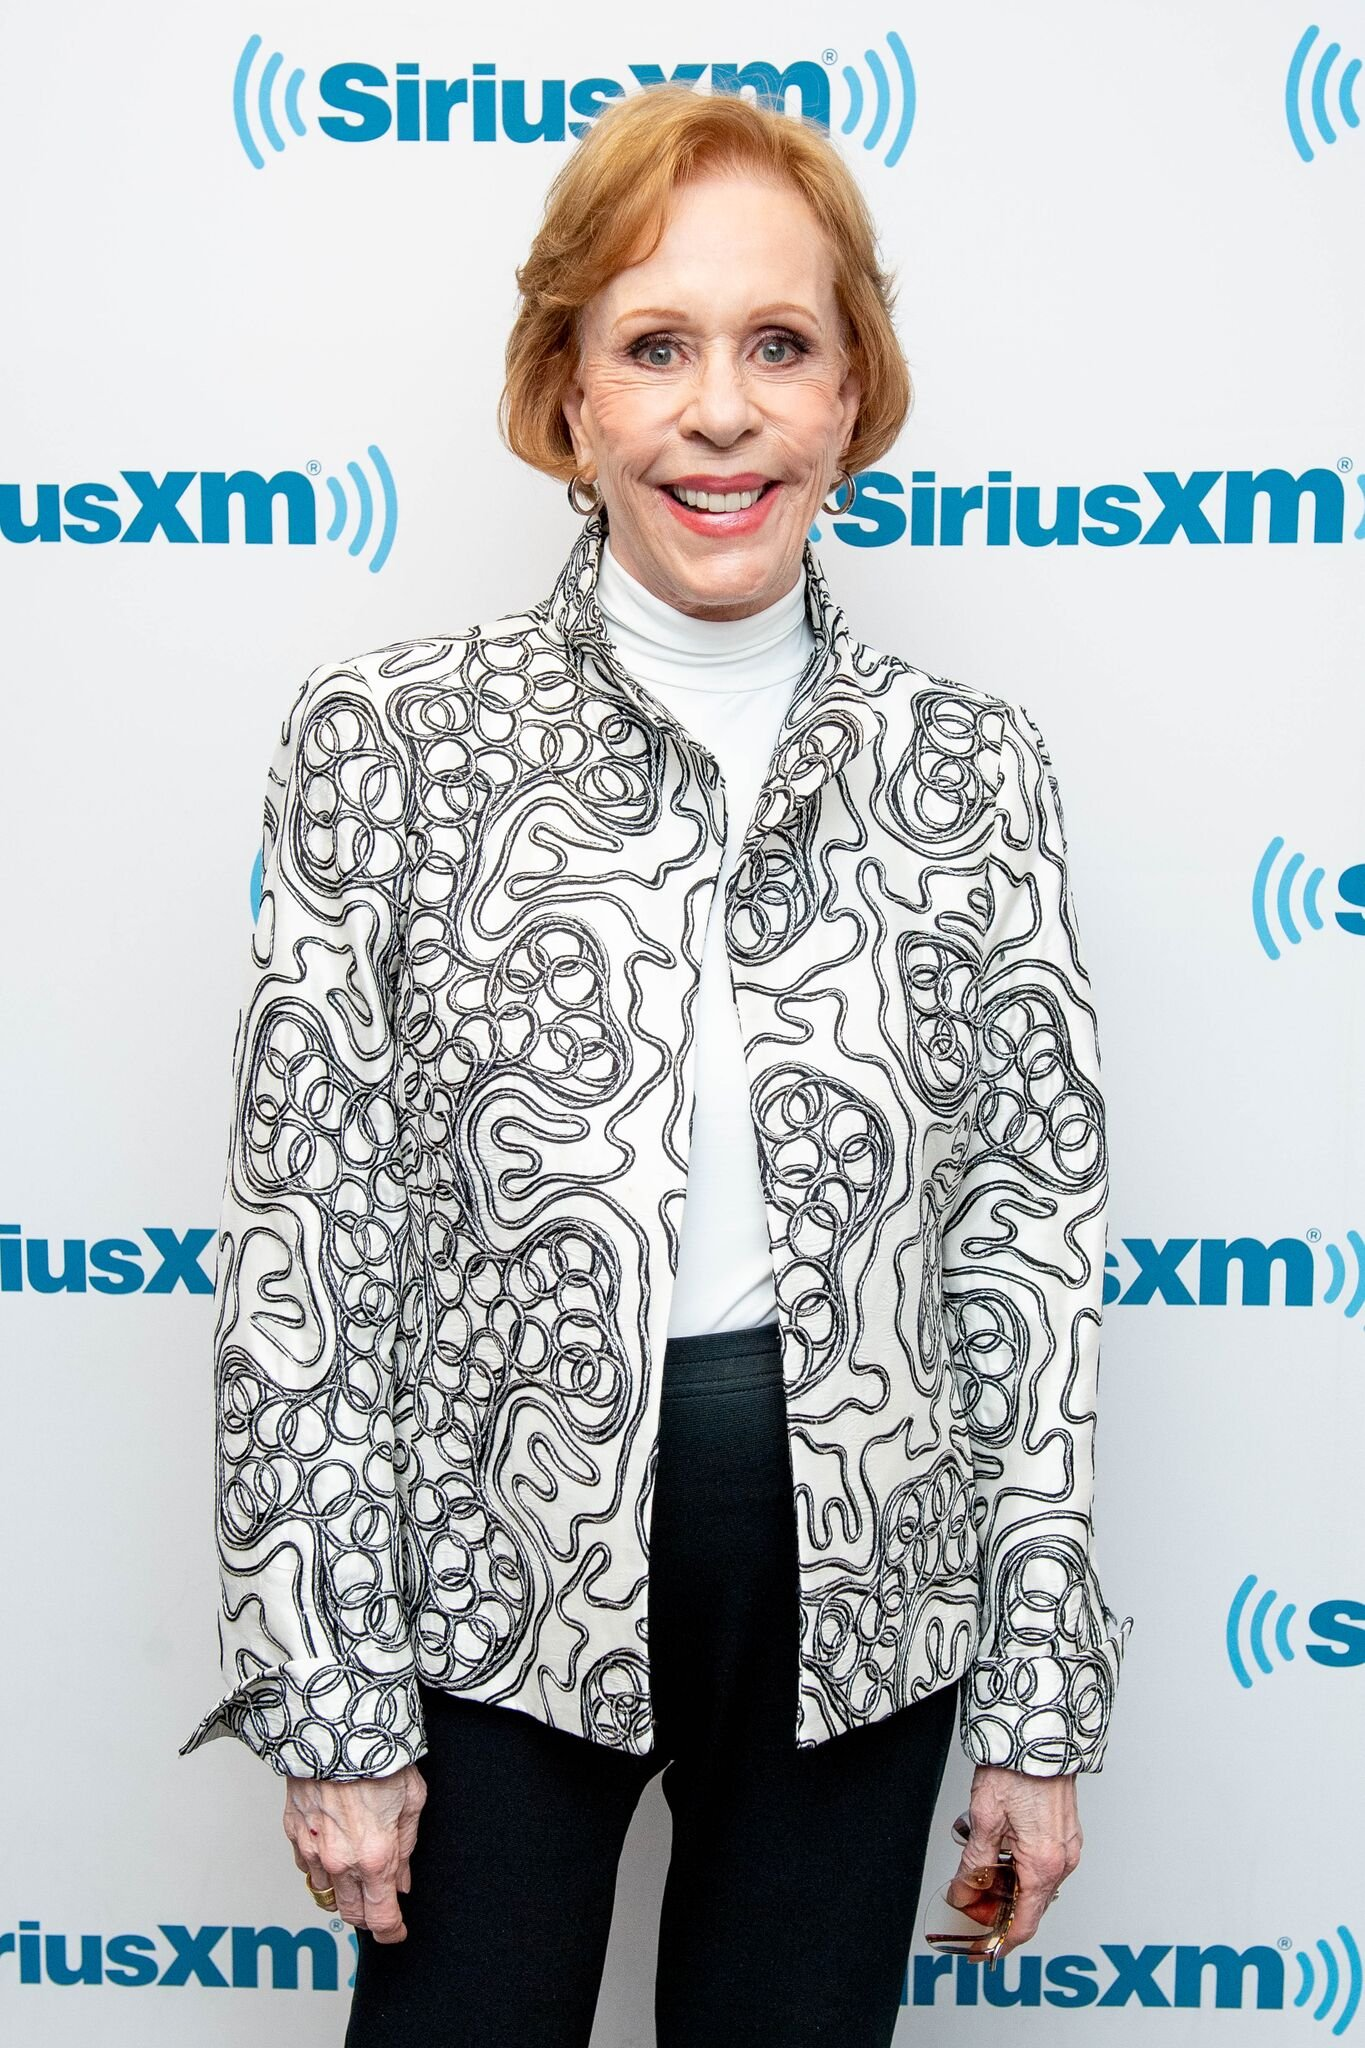 Carol Burnett aux studios SiriusXM le 3 mai 2018 à New York | Photo: Getty Images